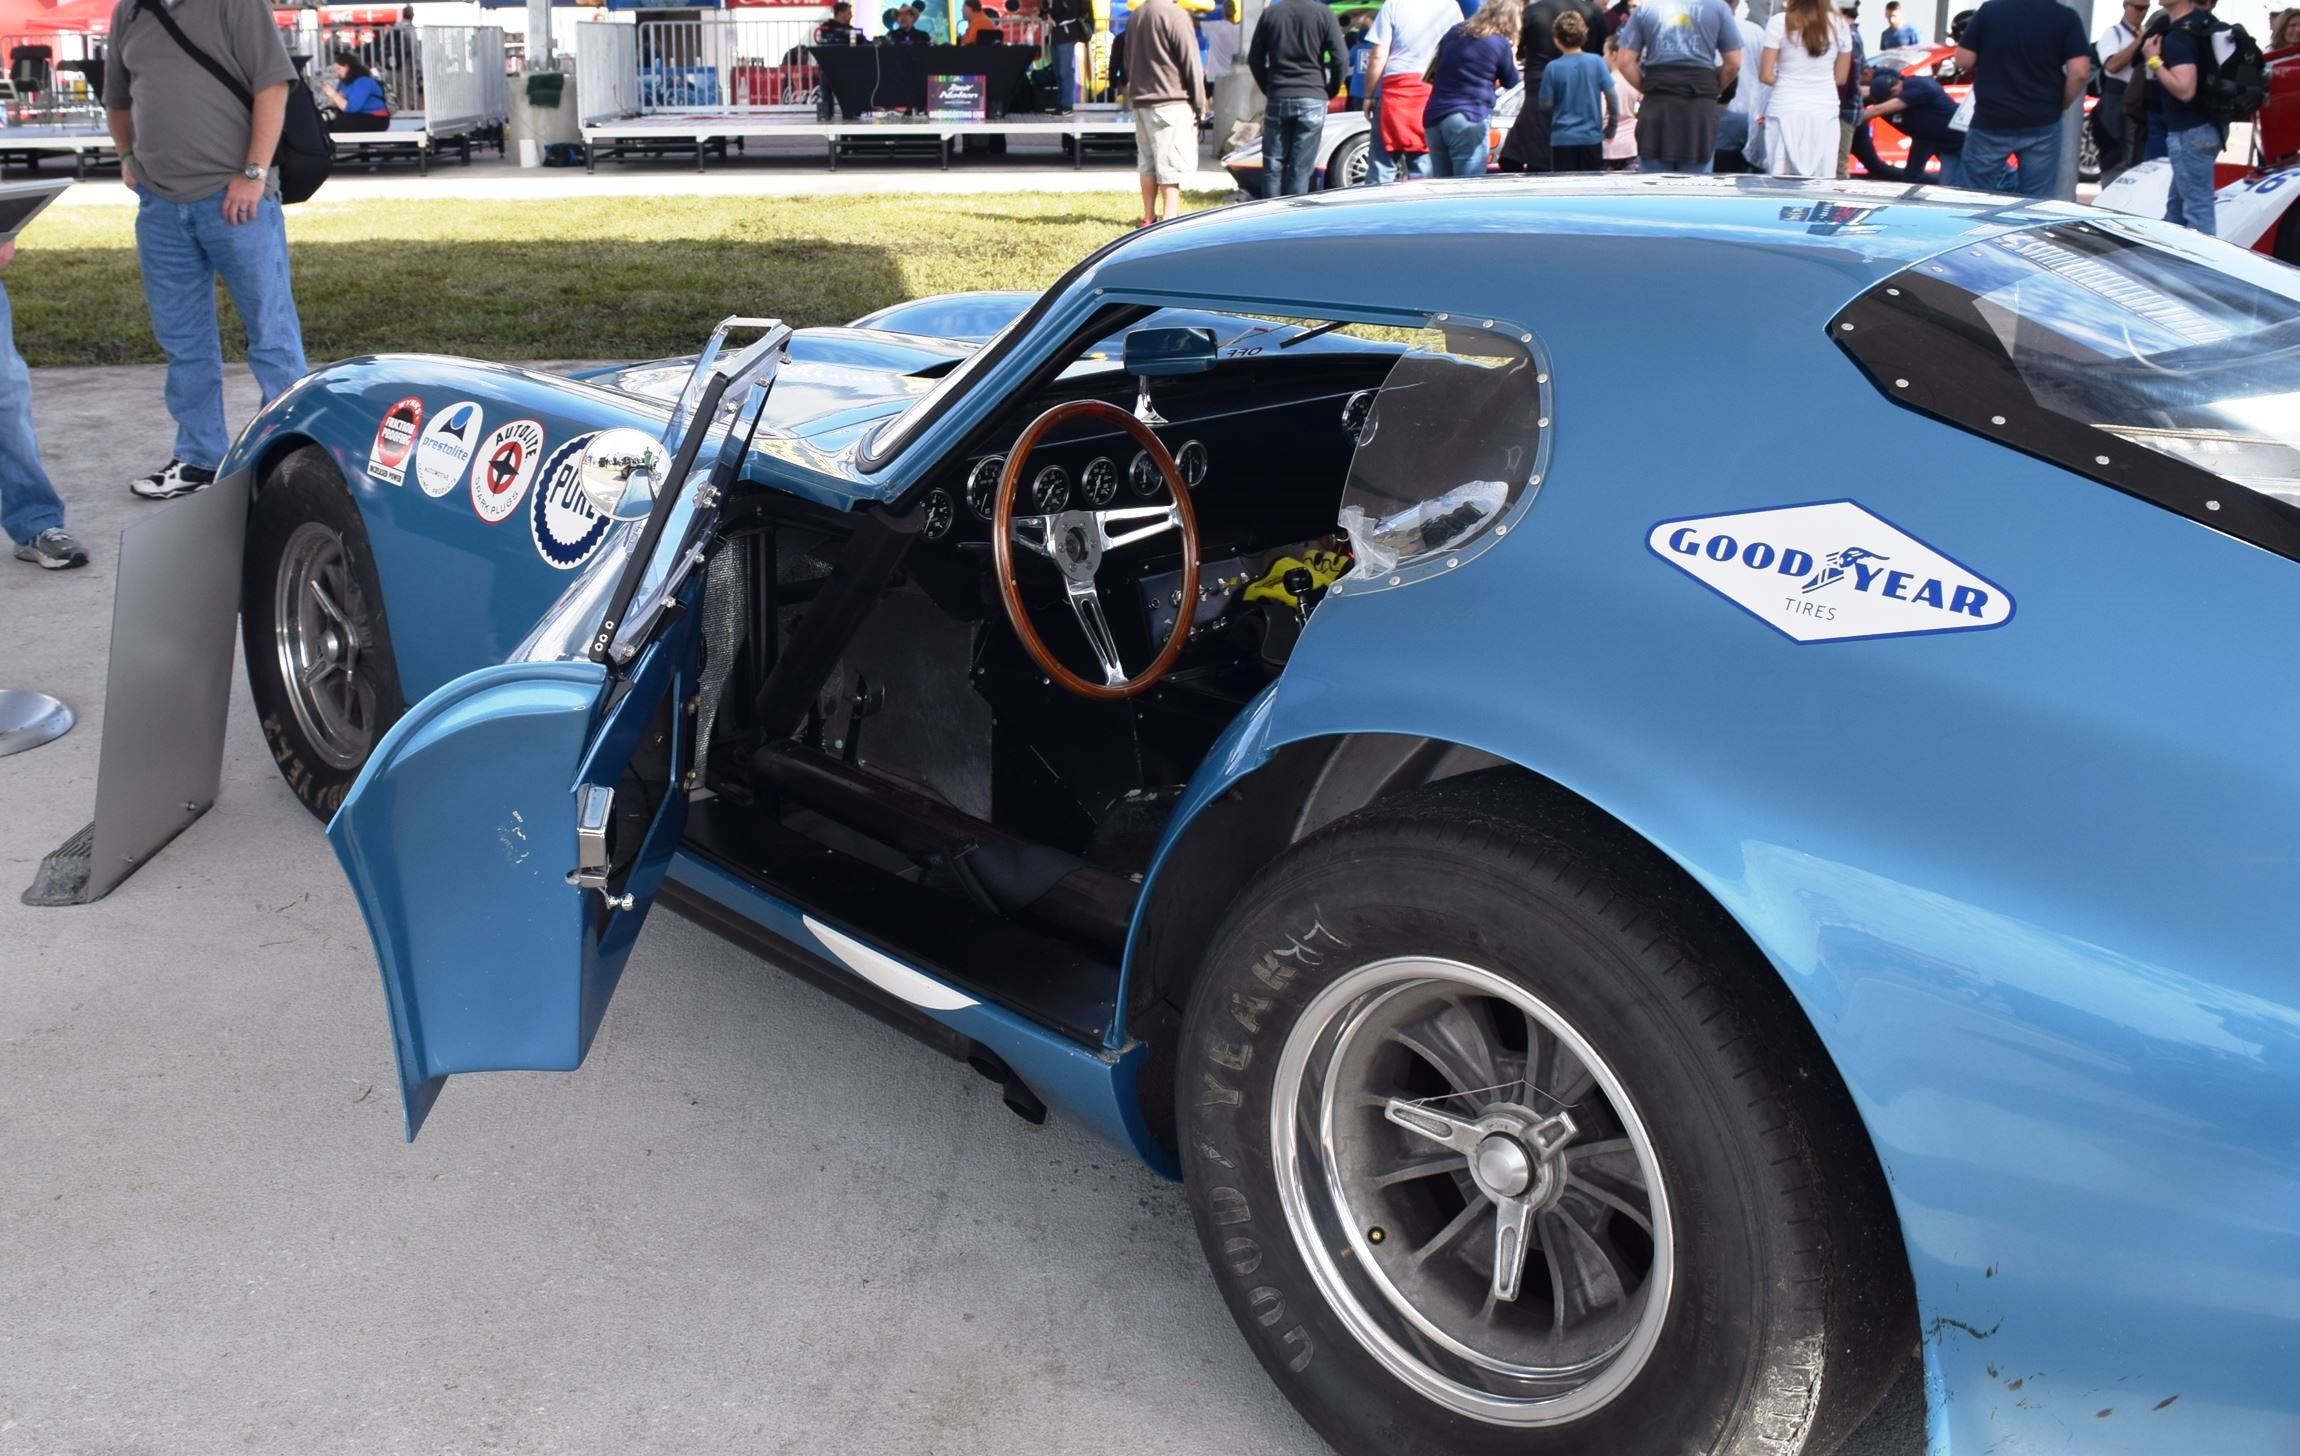 Supercar for Civic Cash? Meet the $22k Daytona Coupe